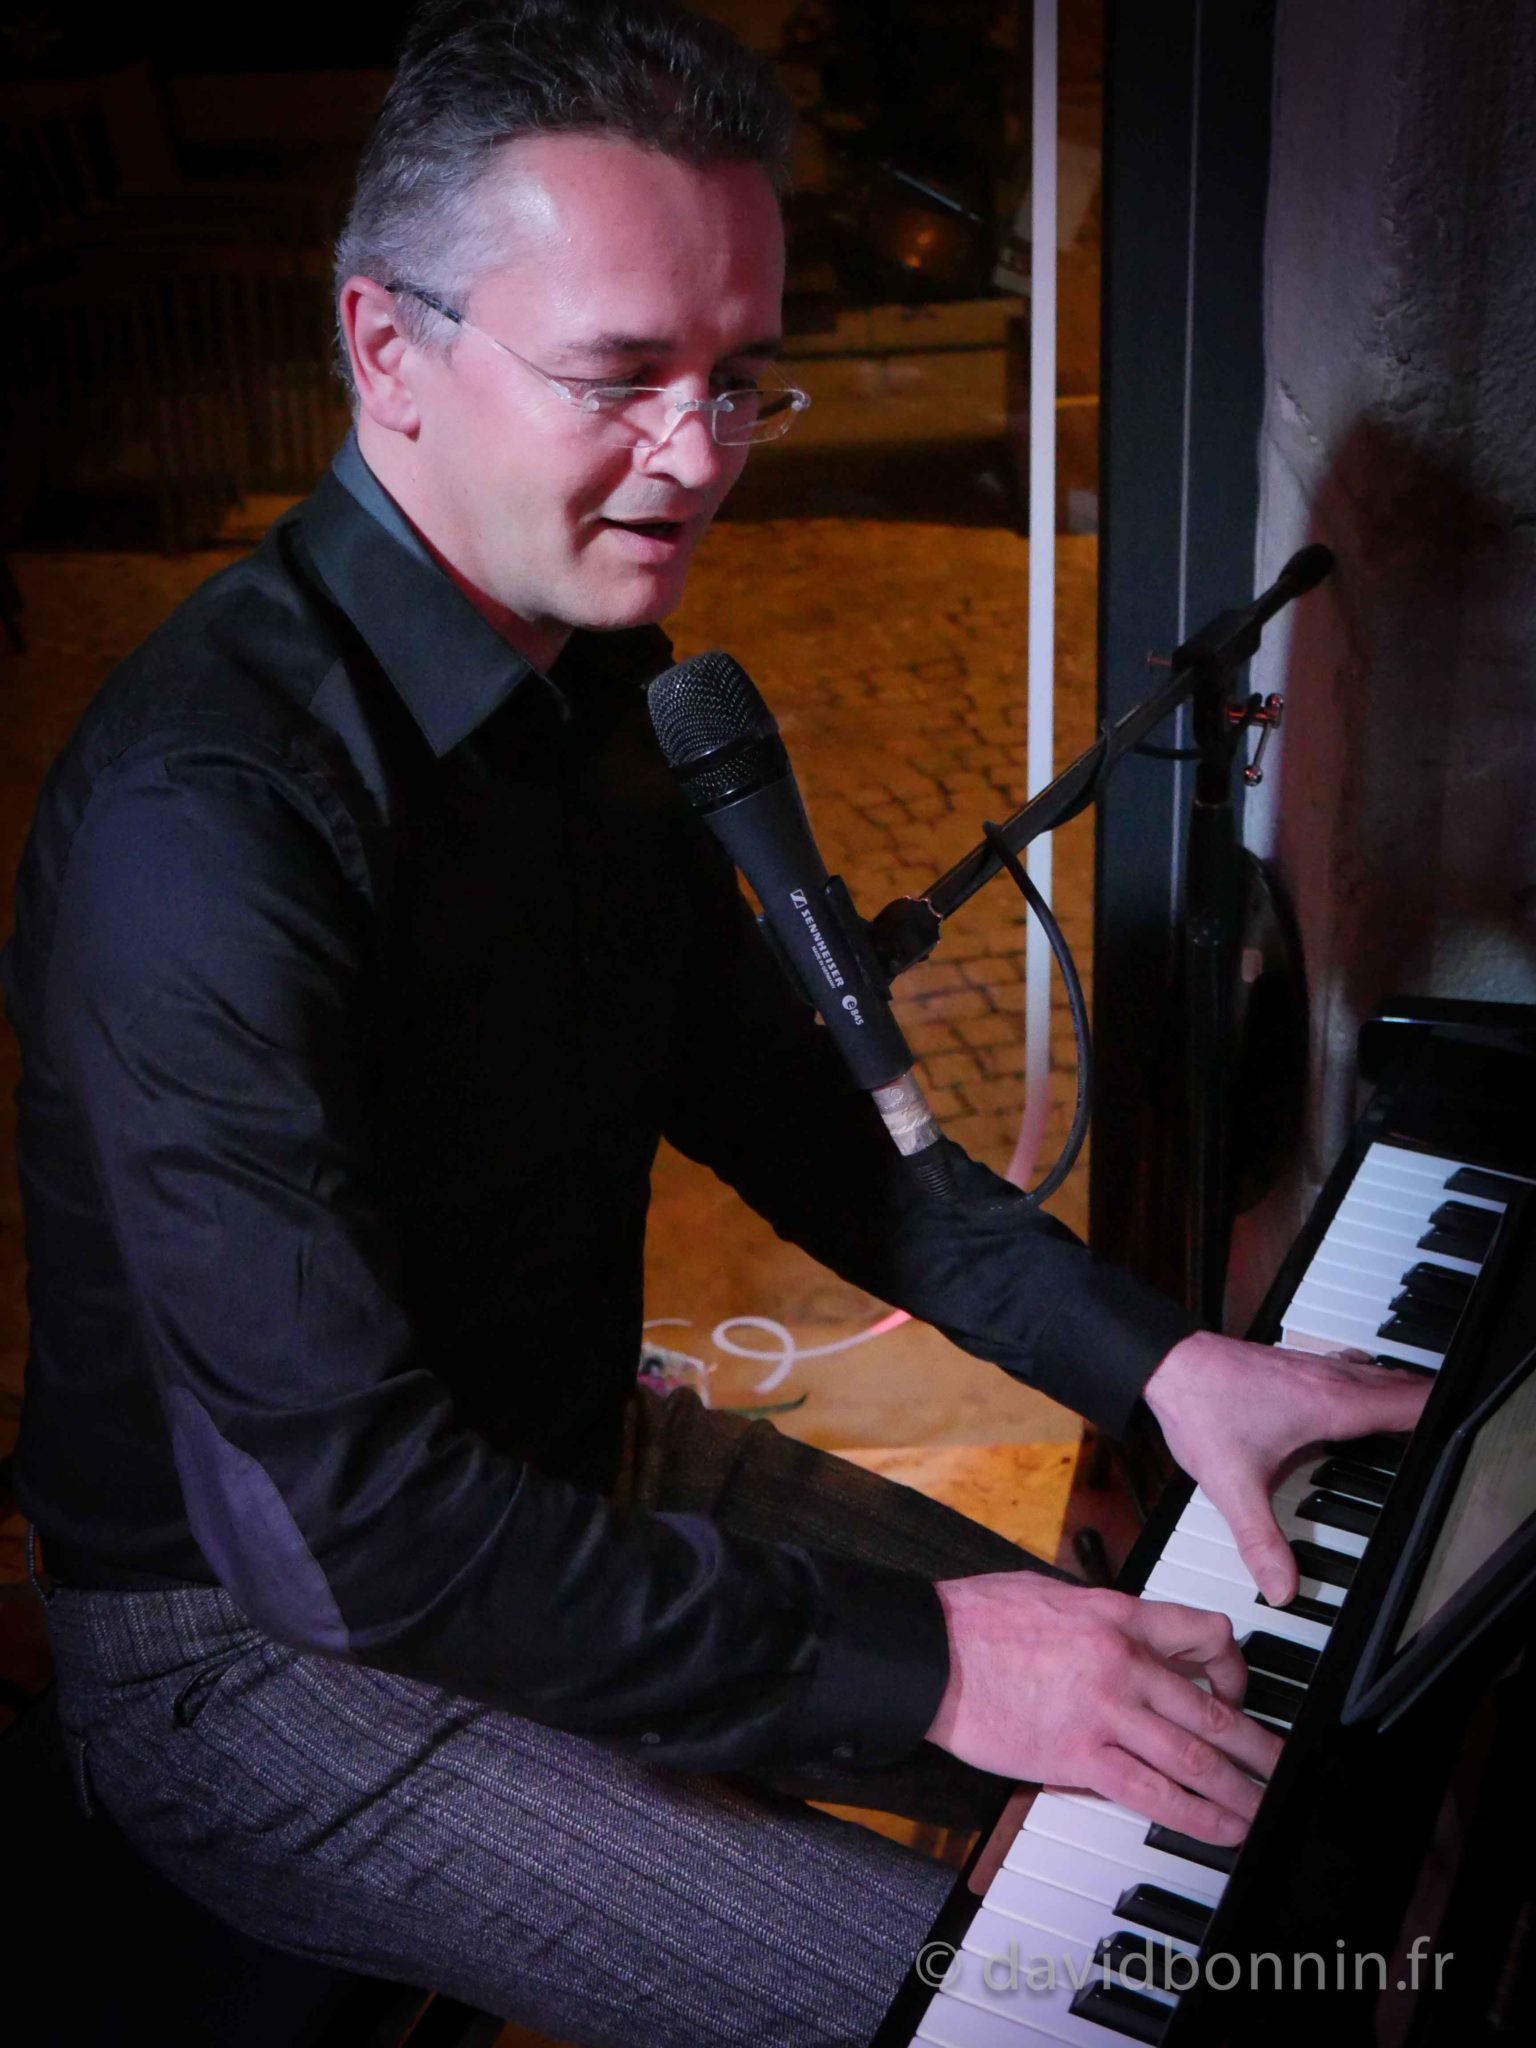 david bonnin - Piano-Bar à l'Epicurial - Chambéry